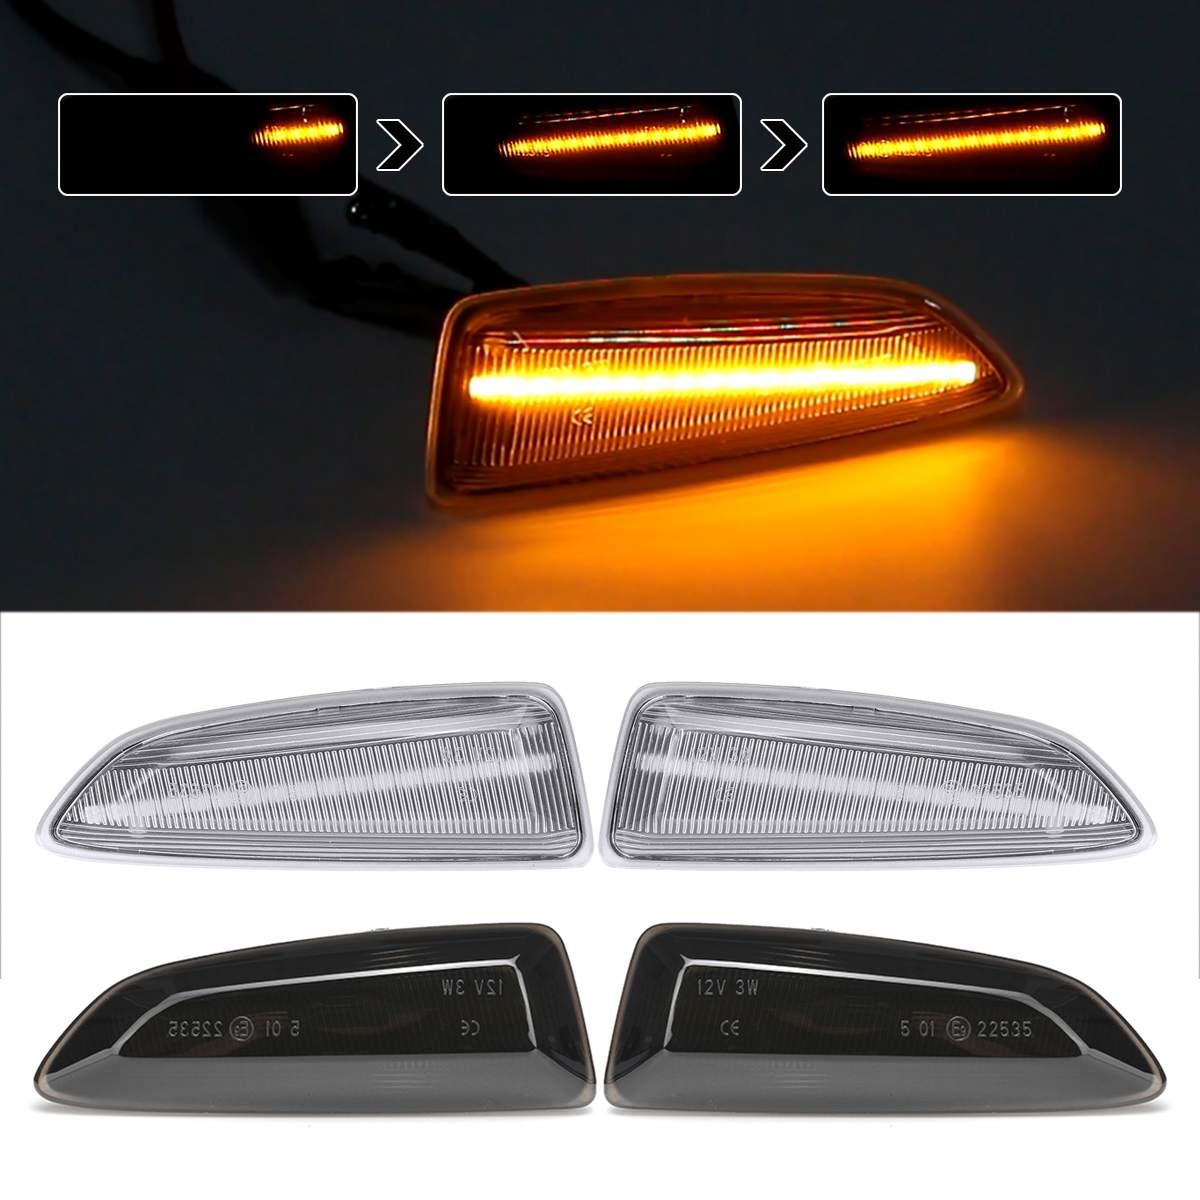 2x Dynamic <font><b>LED</b></font> Side Marker Lights 12V Flowing Turn Signal Light Side Repeater Lamp Panel Lamp for Opel for Vauxhall <font><b>Astra</b></font> <font><b>J</b></font> K image